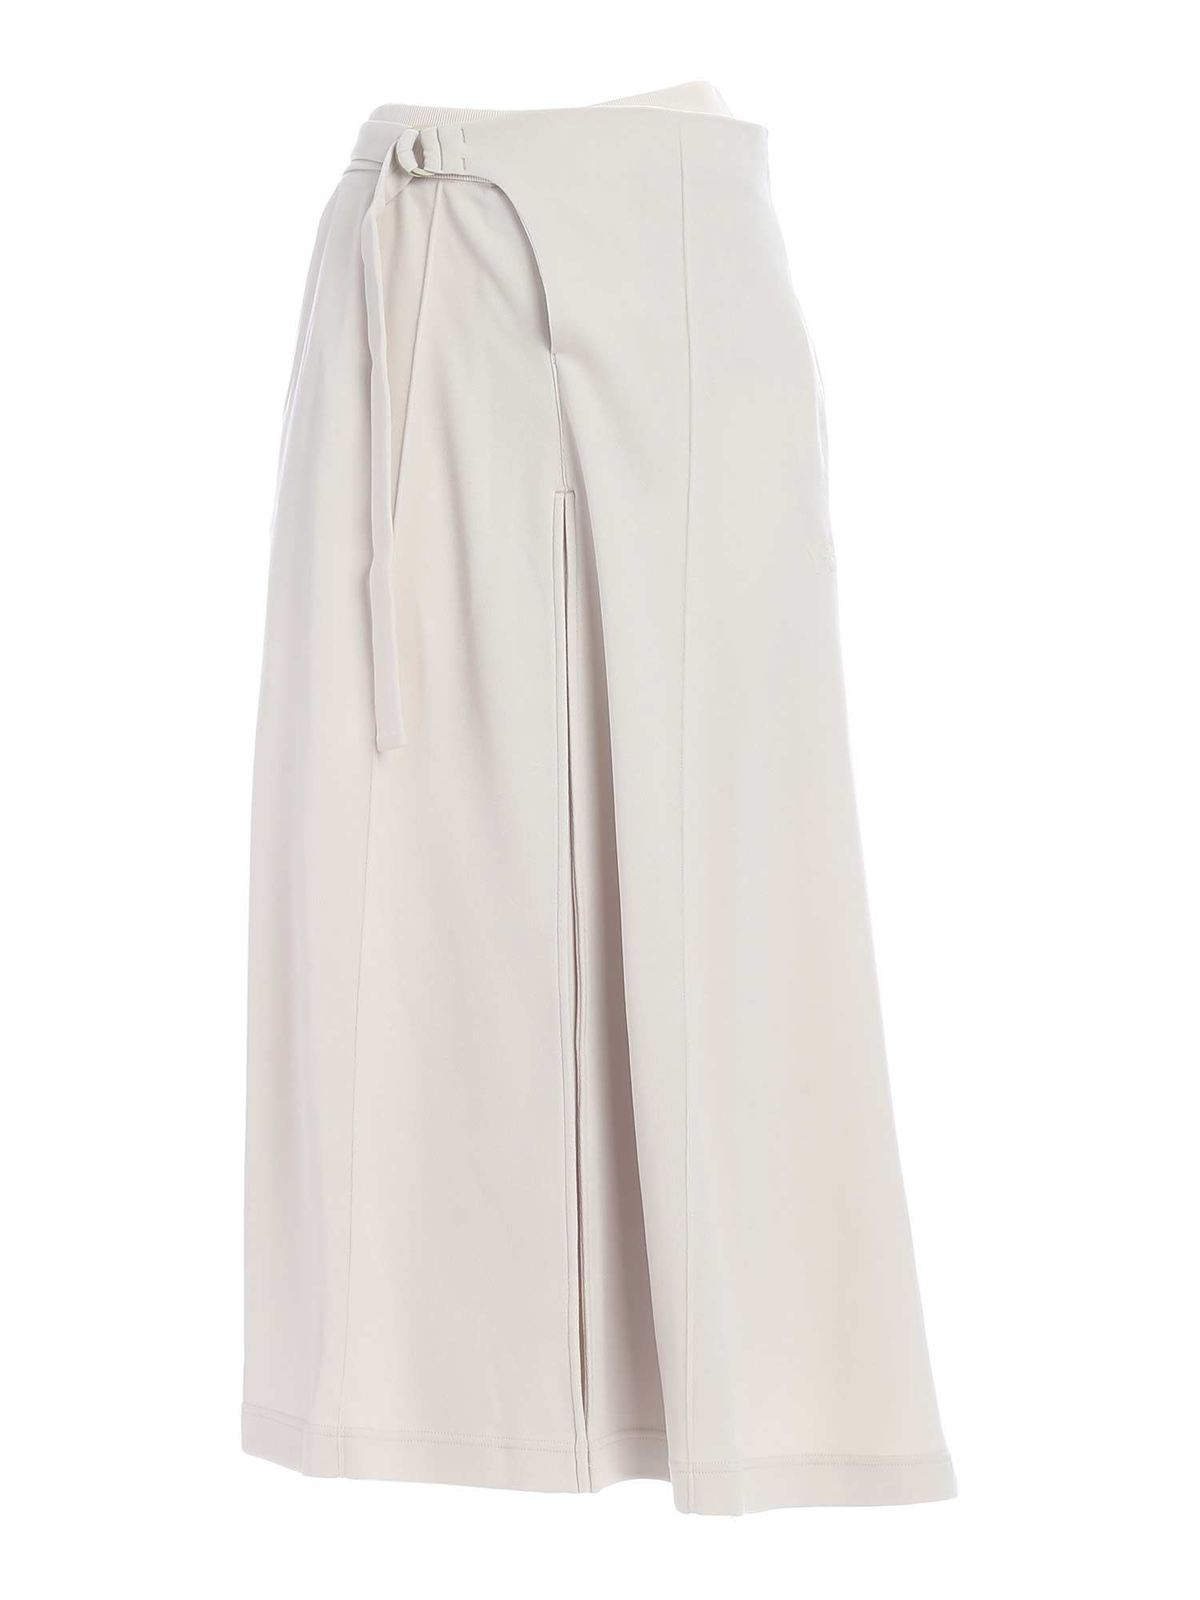 Y-3 CLASSIC TAILORED TRACK SKIRT IN ECRU COLOR